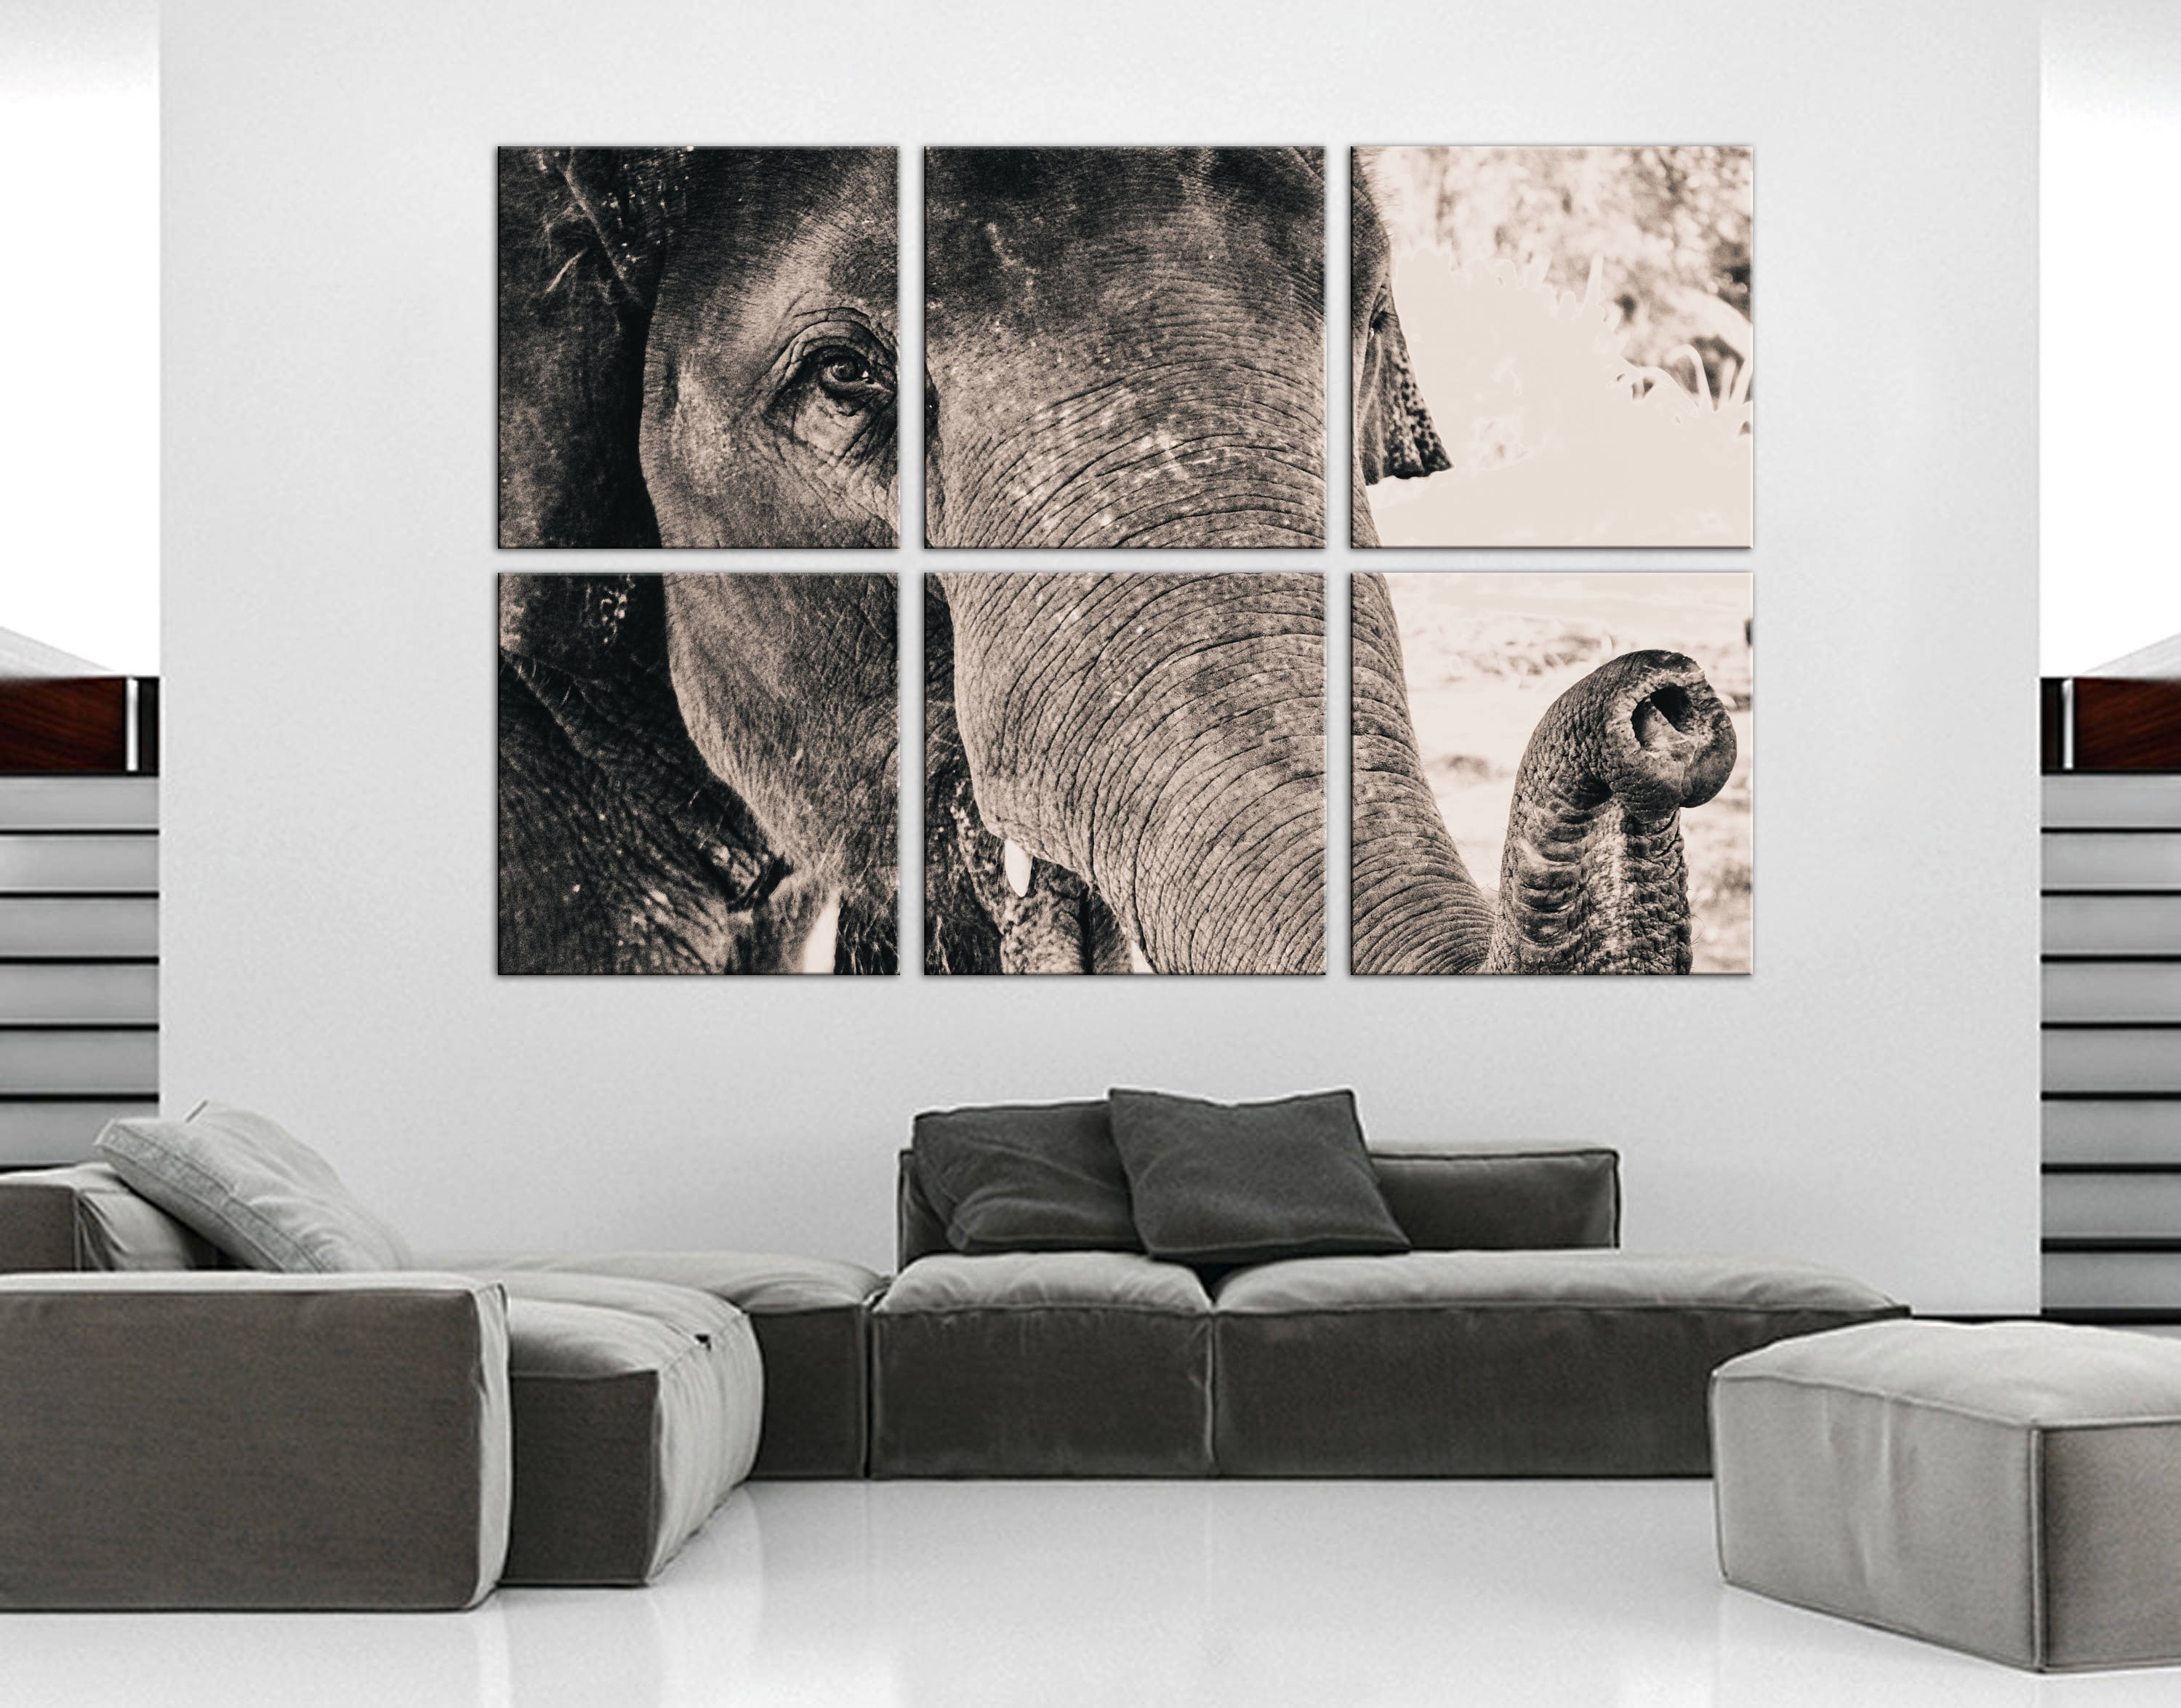 Elephant Wall Decor Canvas Elephant Wall Art Canvas Art Home Decor With Regard To Newest Queensland Canvas Wall Art (View 3 of 15)